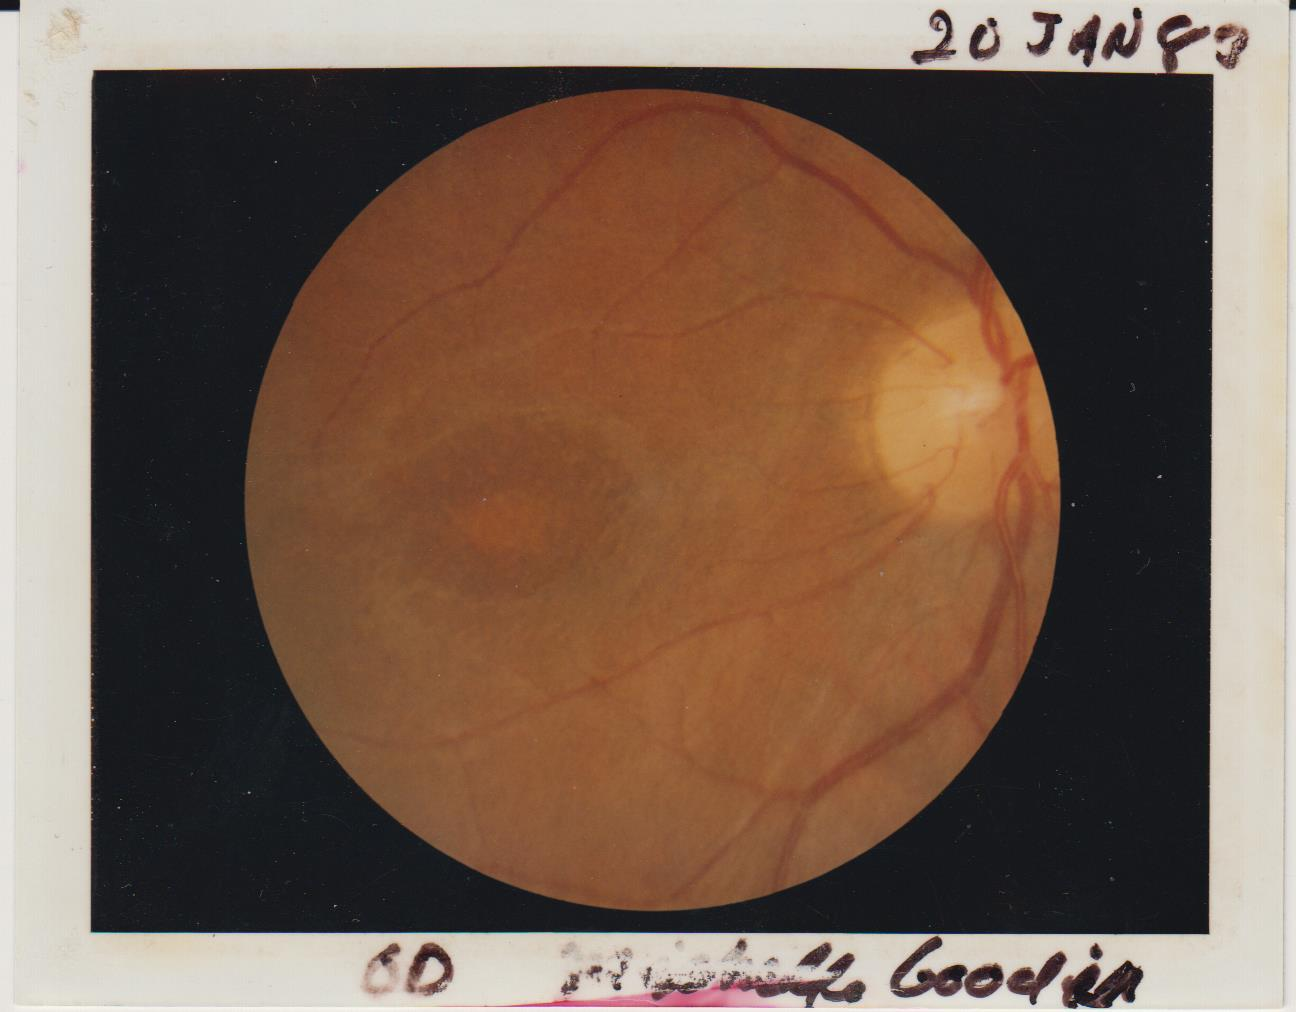 Image of Godin's retina in 1983